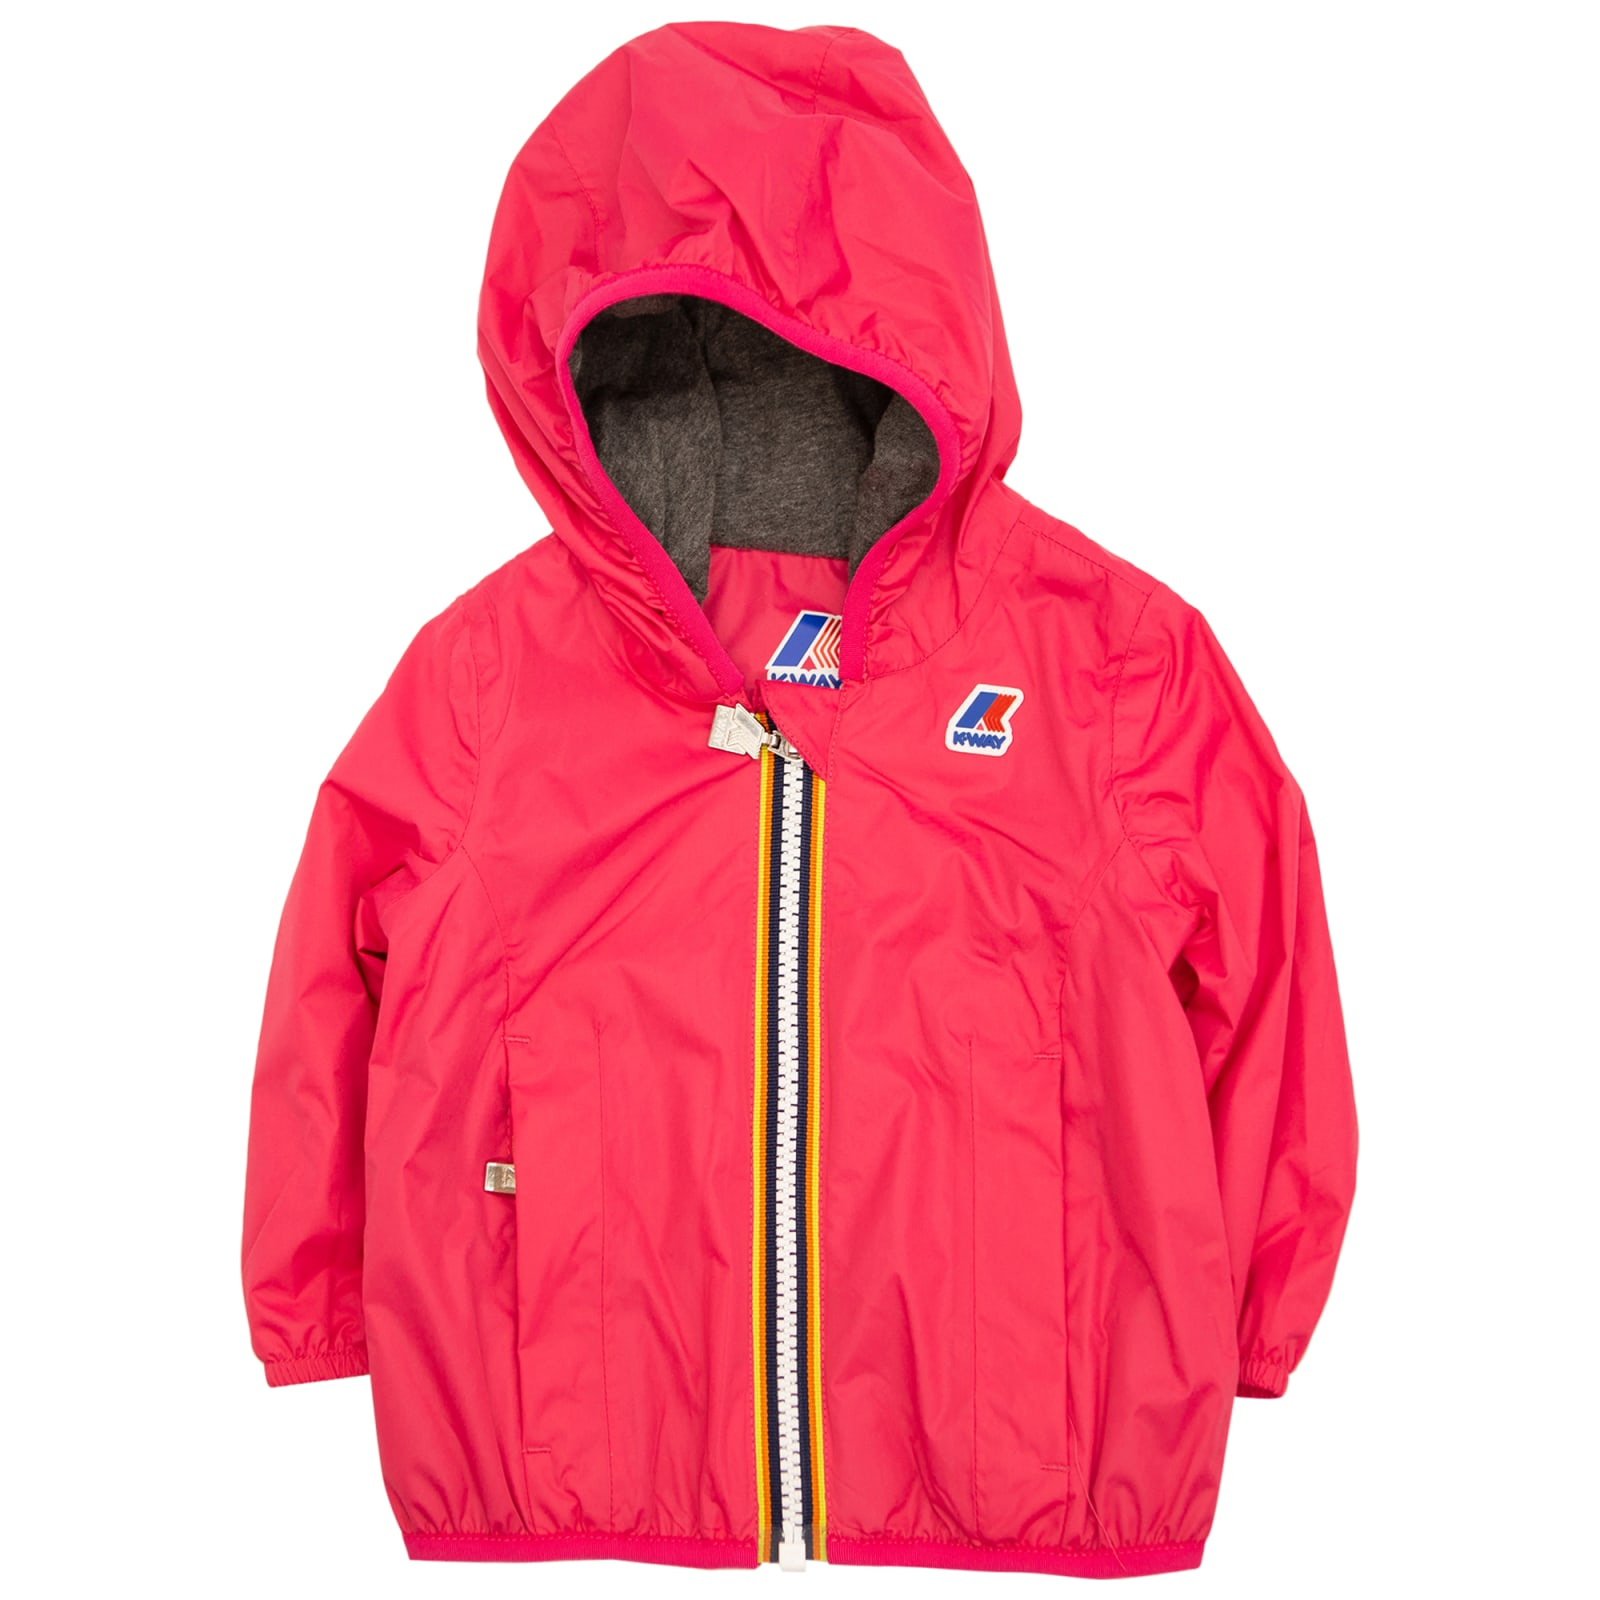 Windproof Jacket With Jersey Interior Lily Poly Kway